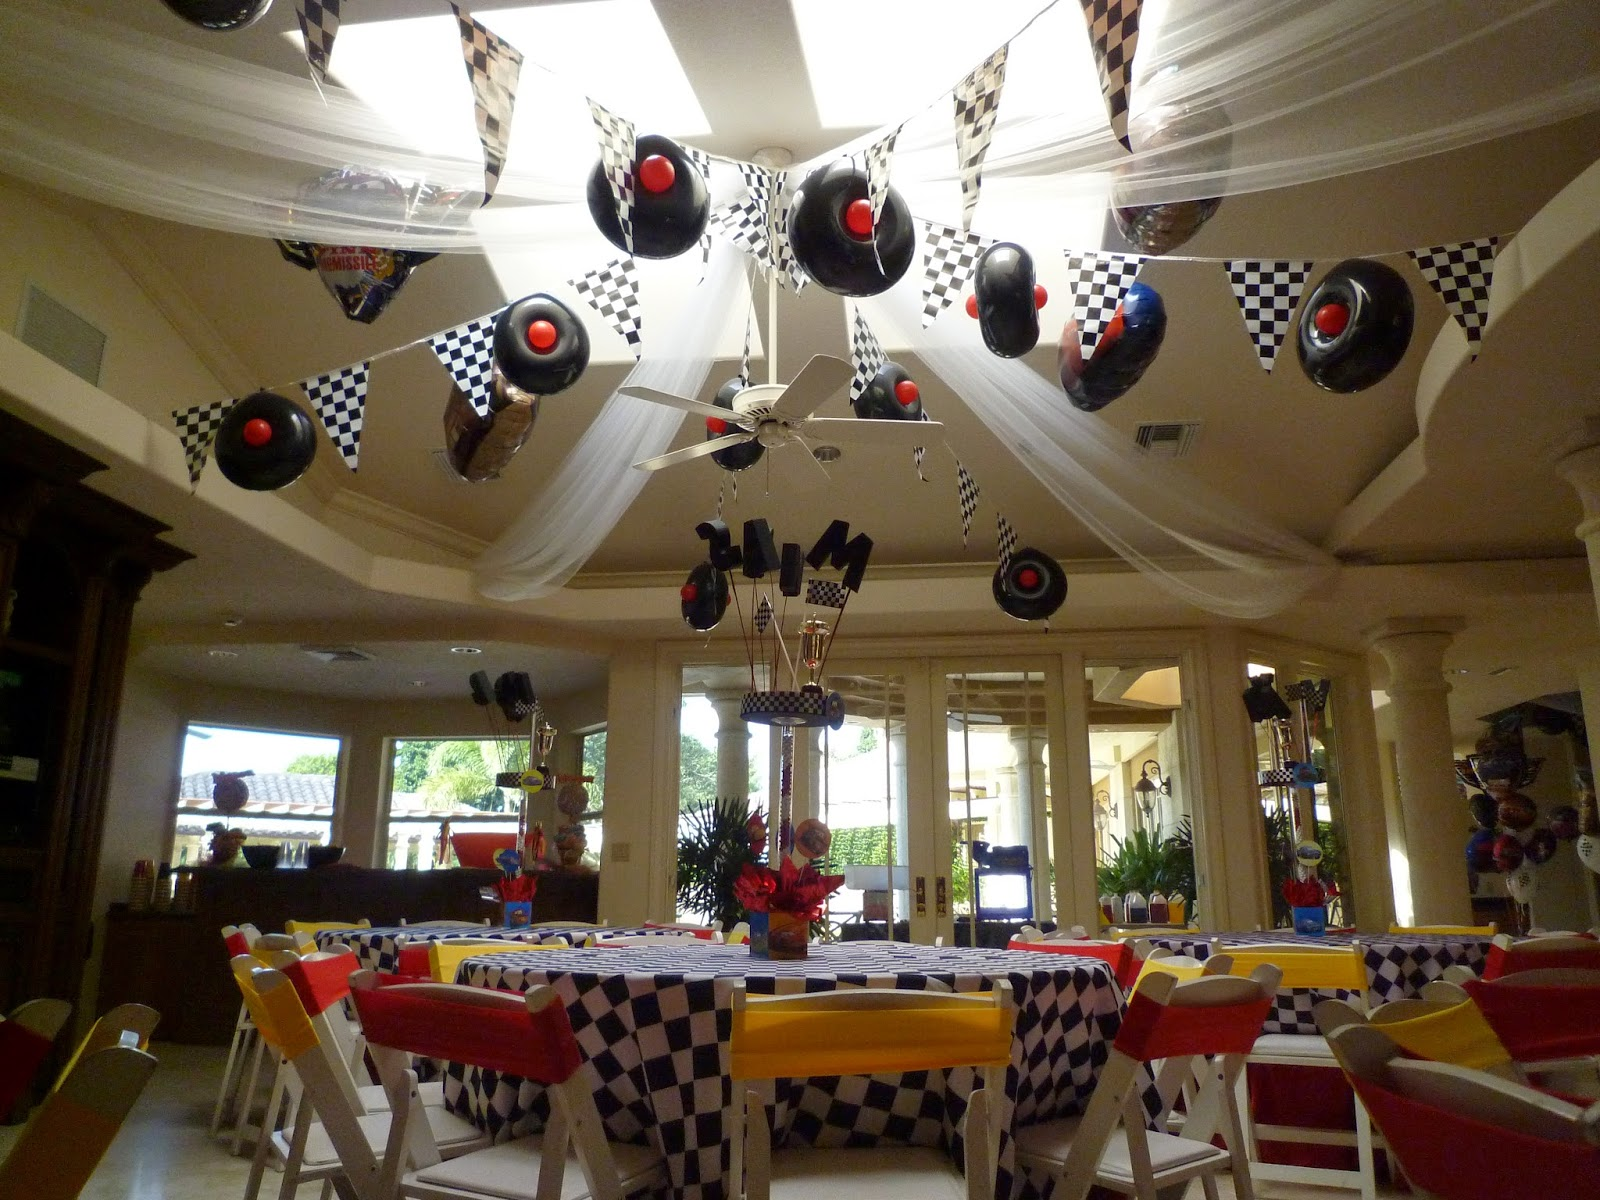 Disney Theme Decorations Dreamark Events Blog Disney Cars Theme Decor With Cars Balloon